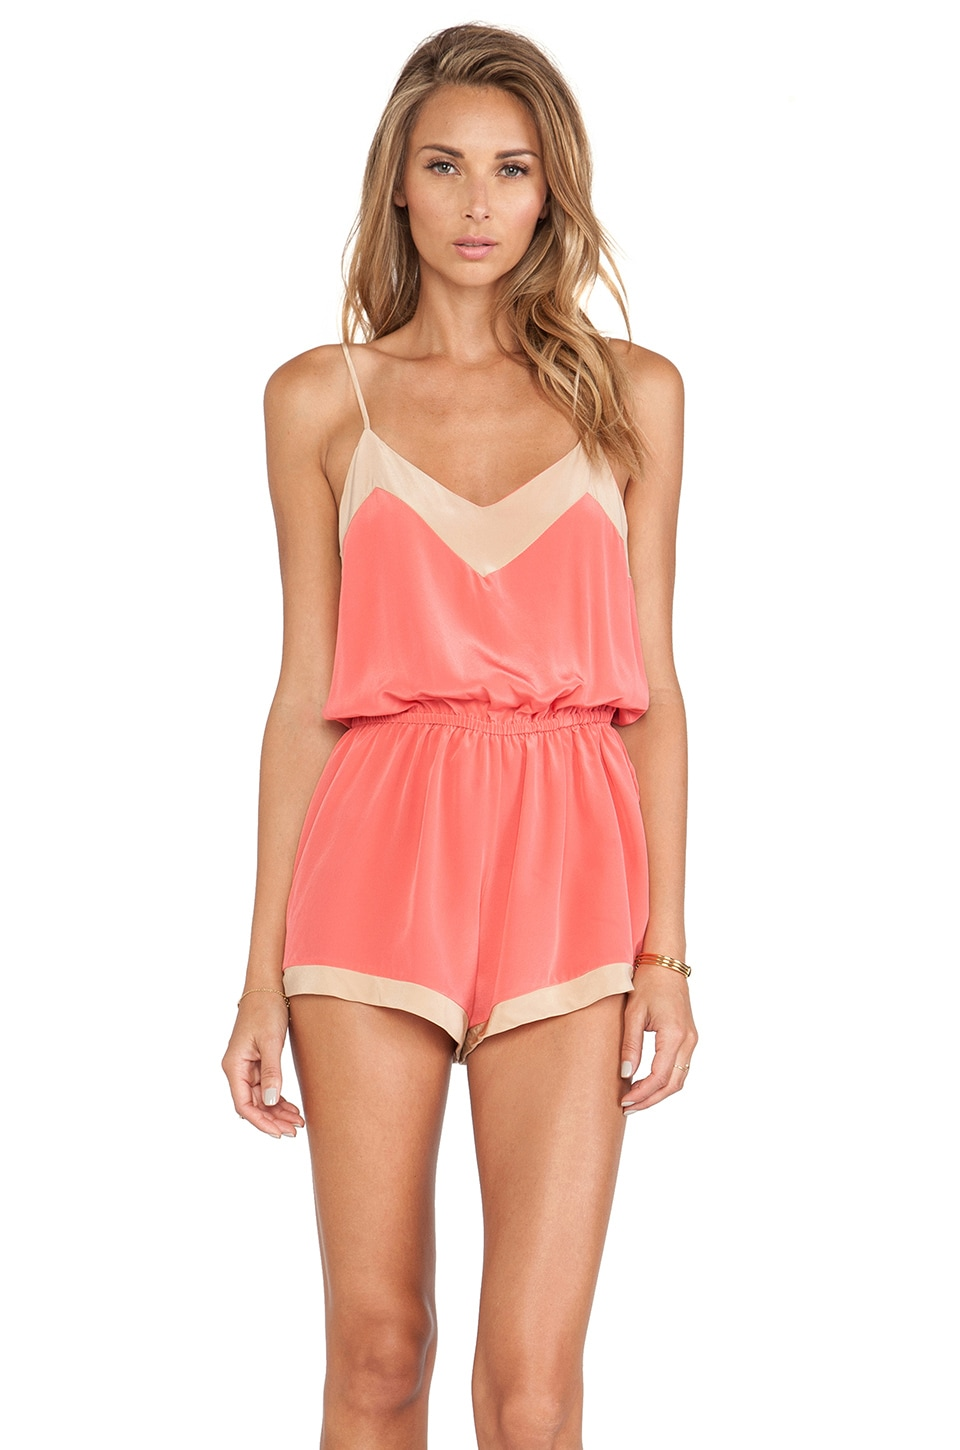 Helena Quinn Romper in Pink & Cream